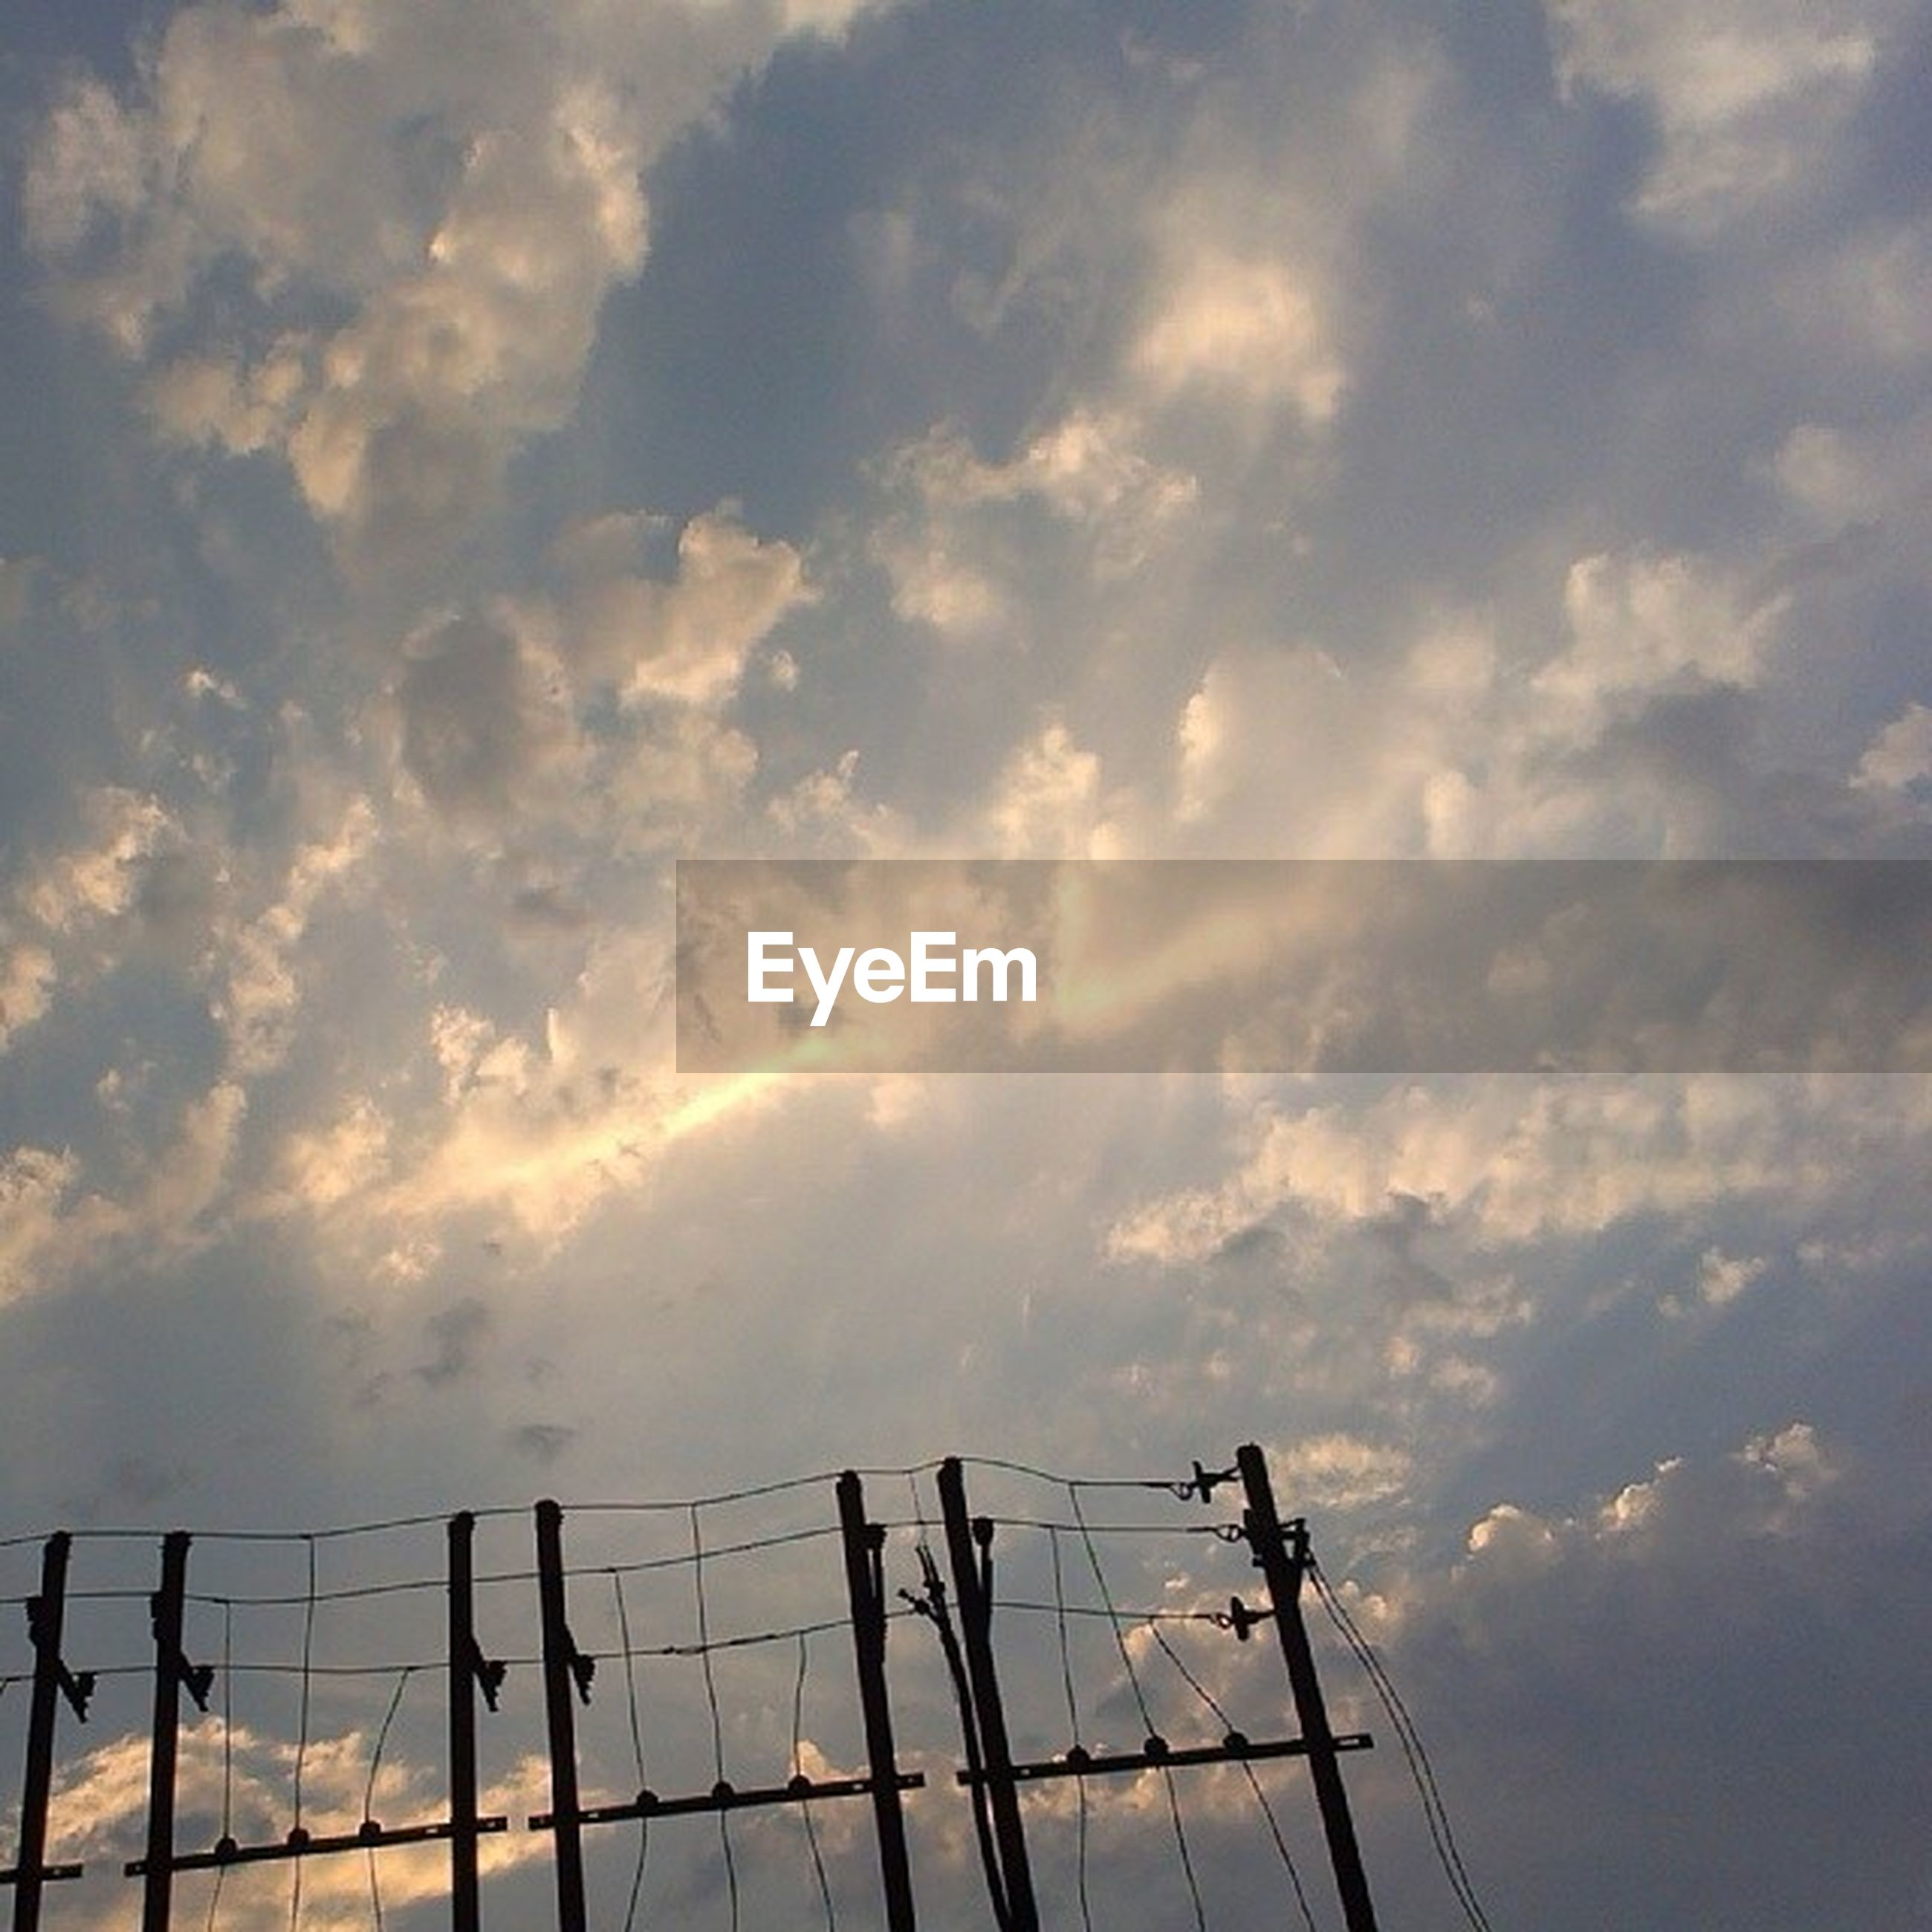 sky, cloud - sky, cloudy, low angle view, cloud, silhouette, nature, weather, tranquility, sunset, beauty in nature, electricity pylon, scenics, fuel and power generation, connection, outdoors, overcast, tranquil scene, power line, dusk